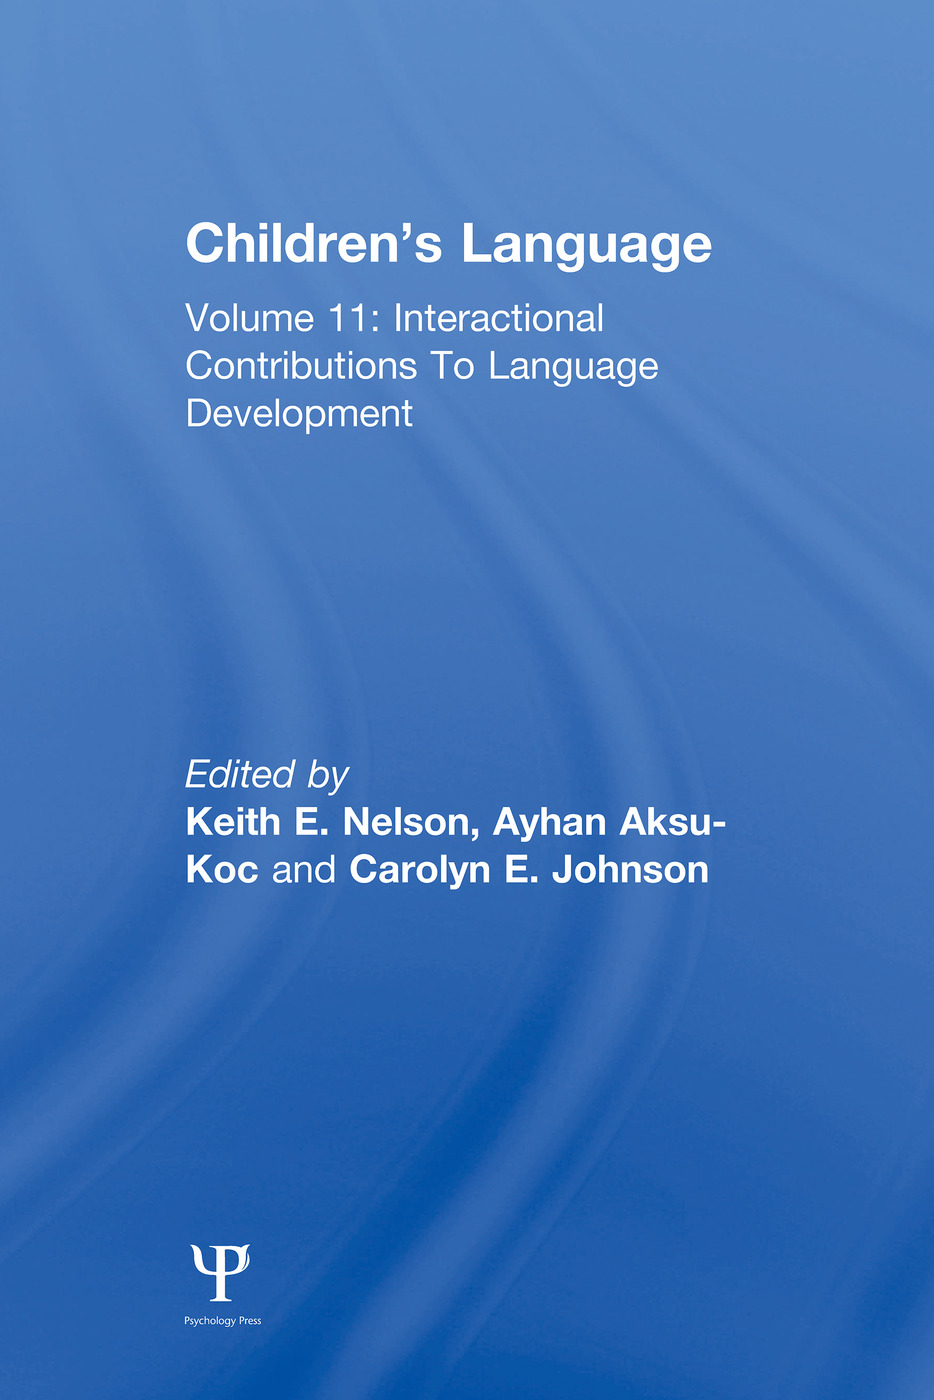 Children's Language: Volume 11: Interactional Contributions To Language Development (Paperback) book cover